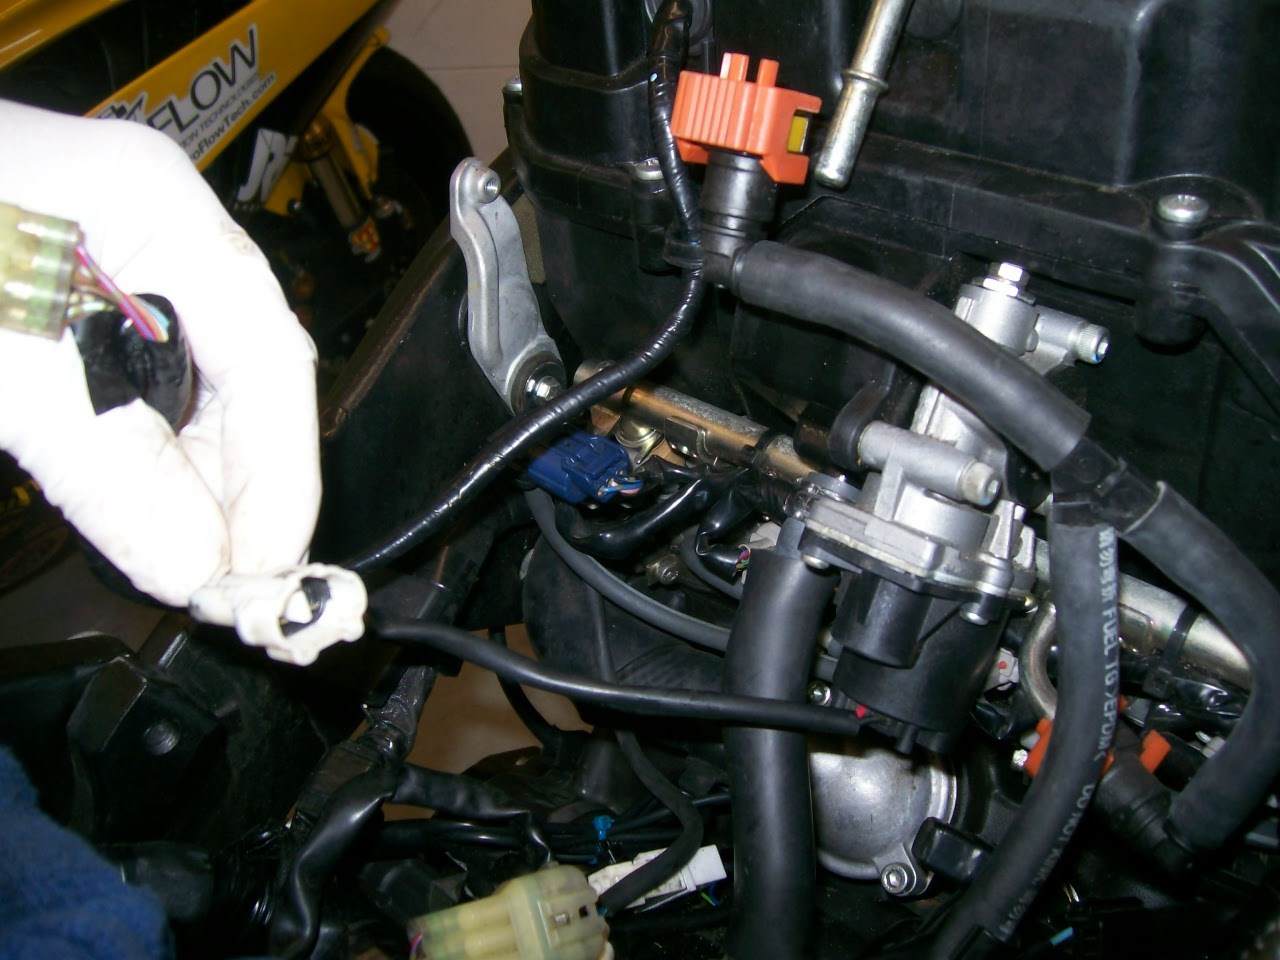 Removing Yamaha R6 Fuel Injectors Removing Fuel Injectors Fuel Injector Service On Yamaha R6 Pro Flow